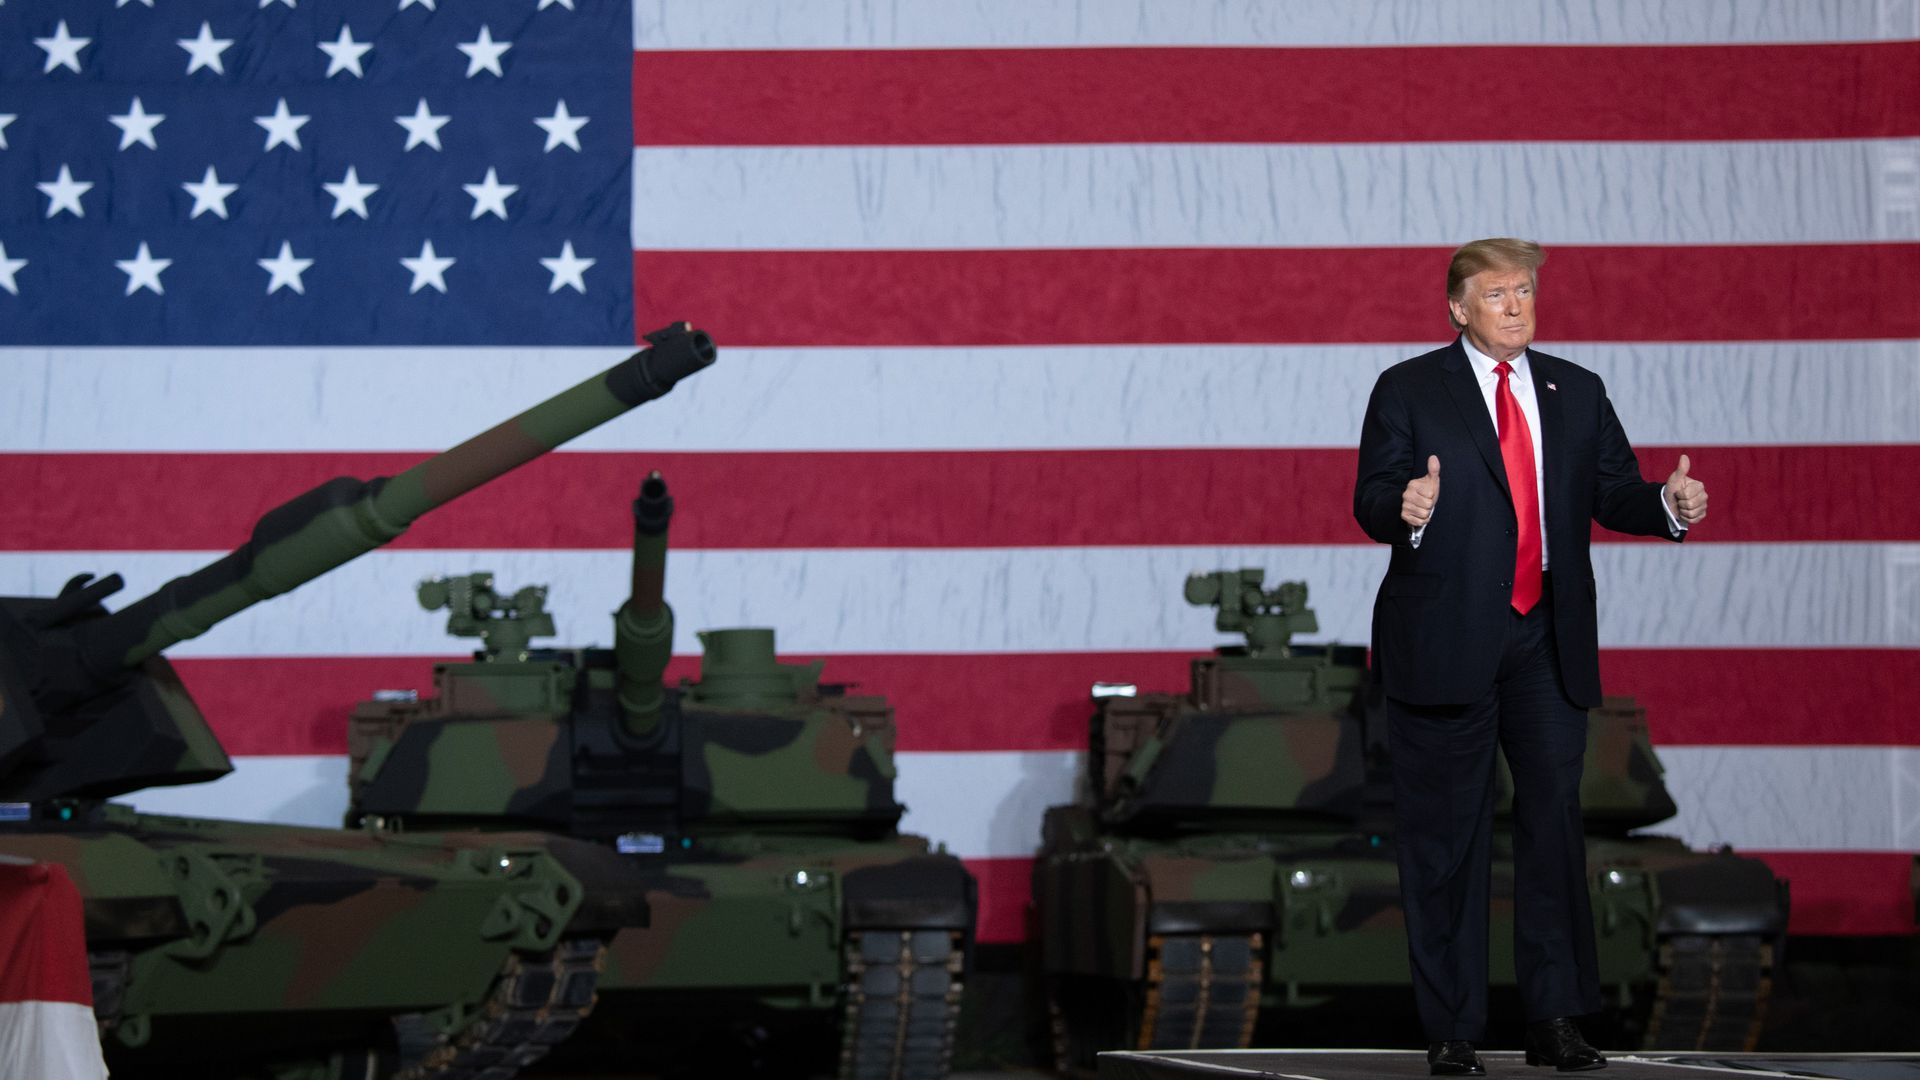 President Donald Trump arrives to speak after touring the Lima Army Tank Plant at Joint Systems Manufacturing in Lima, Ohio, March 20.